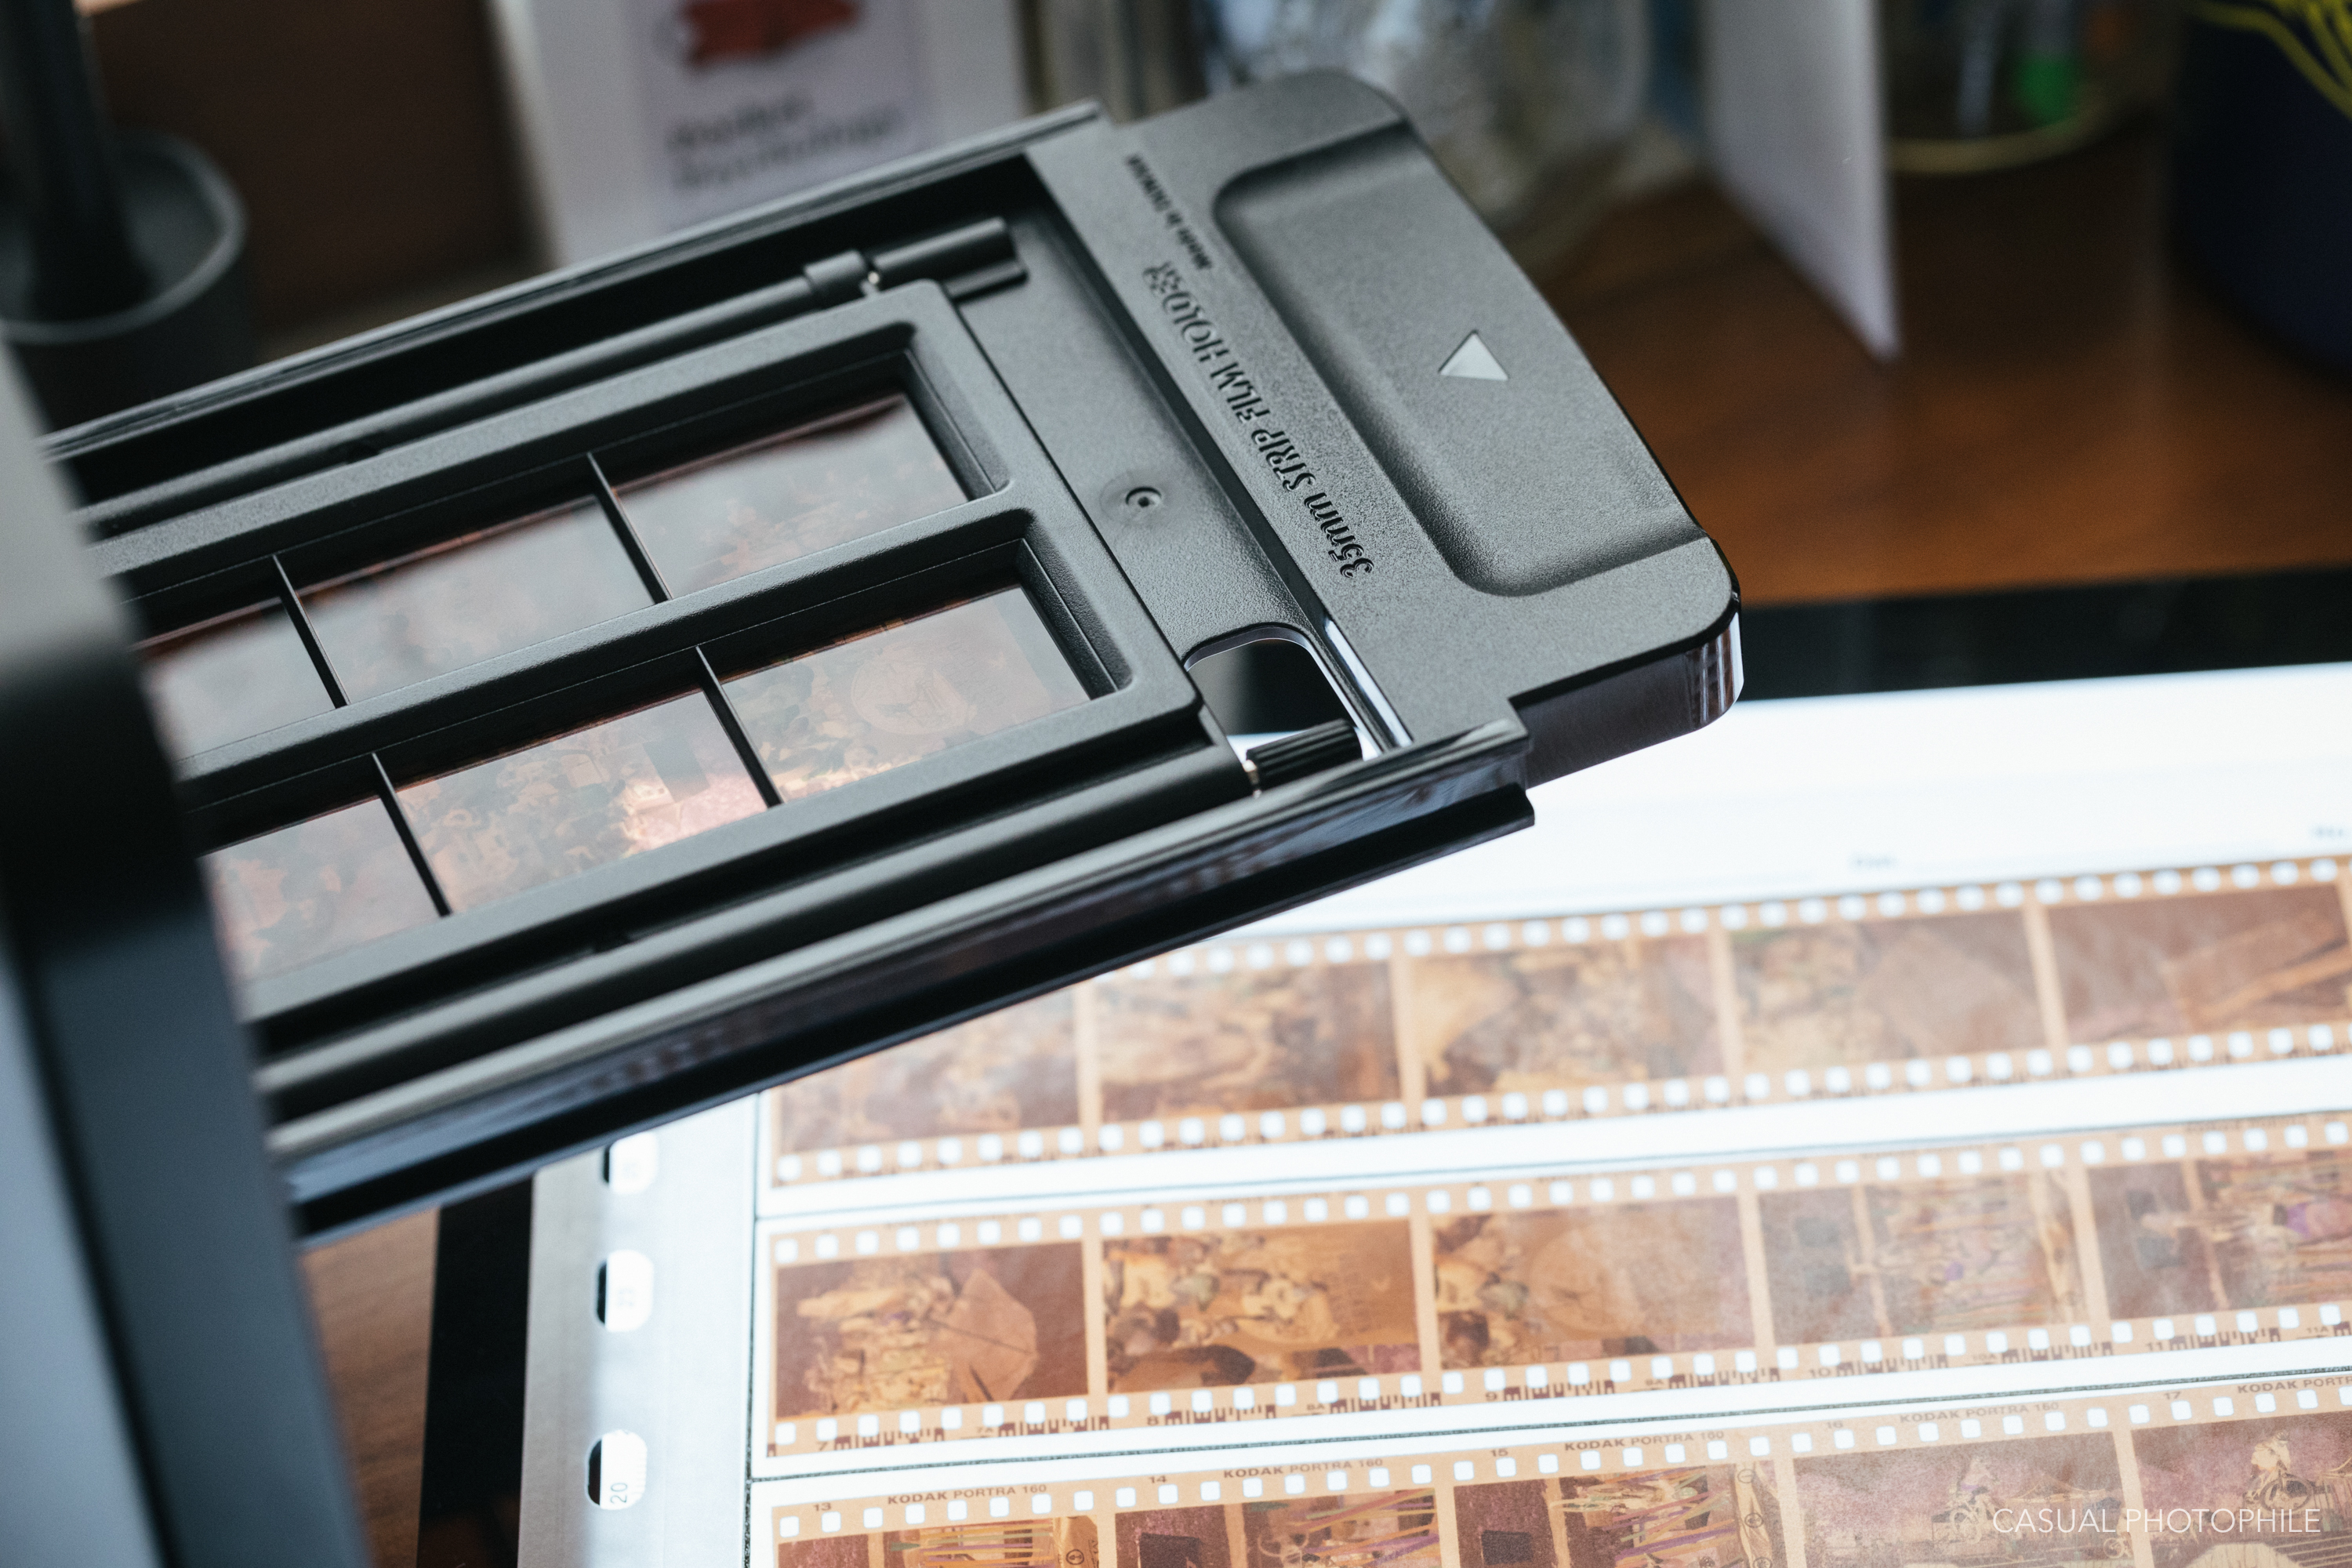 Plustek OpticFilm 120 Scanner Review - Premium Scans, but at What Cost?